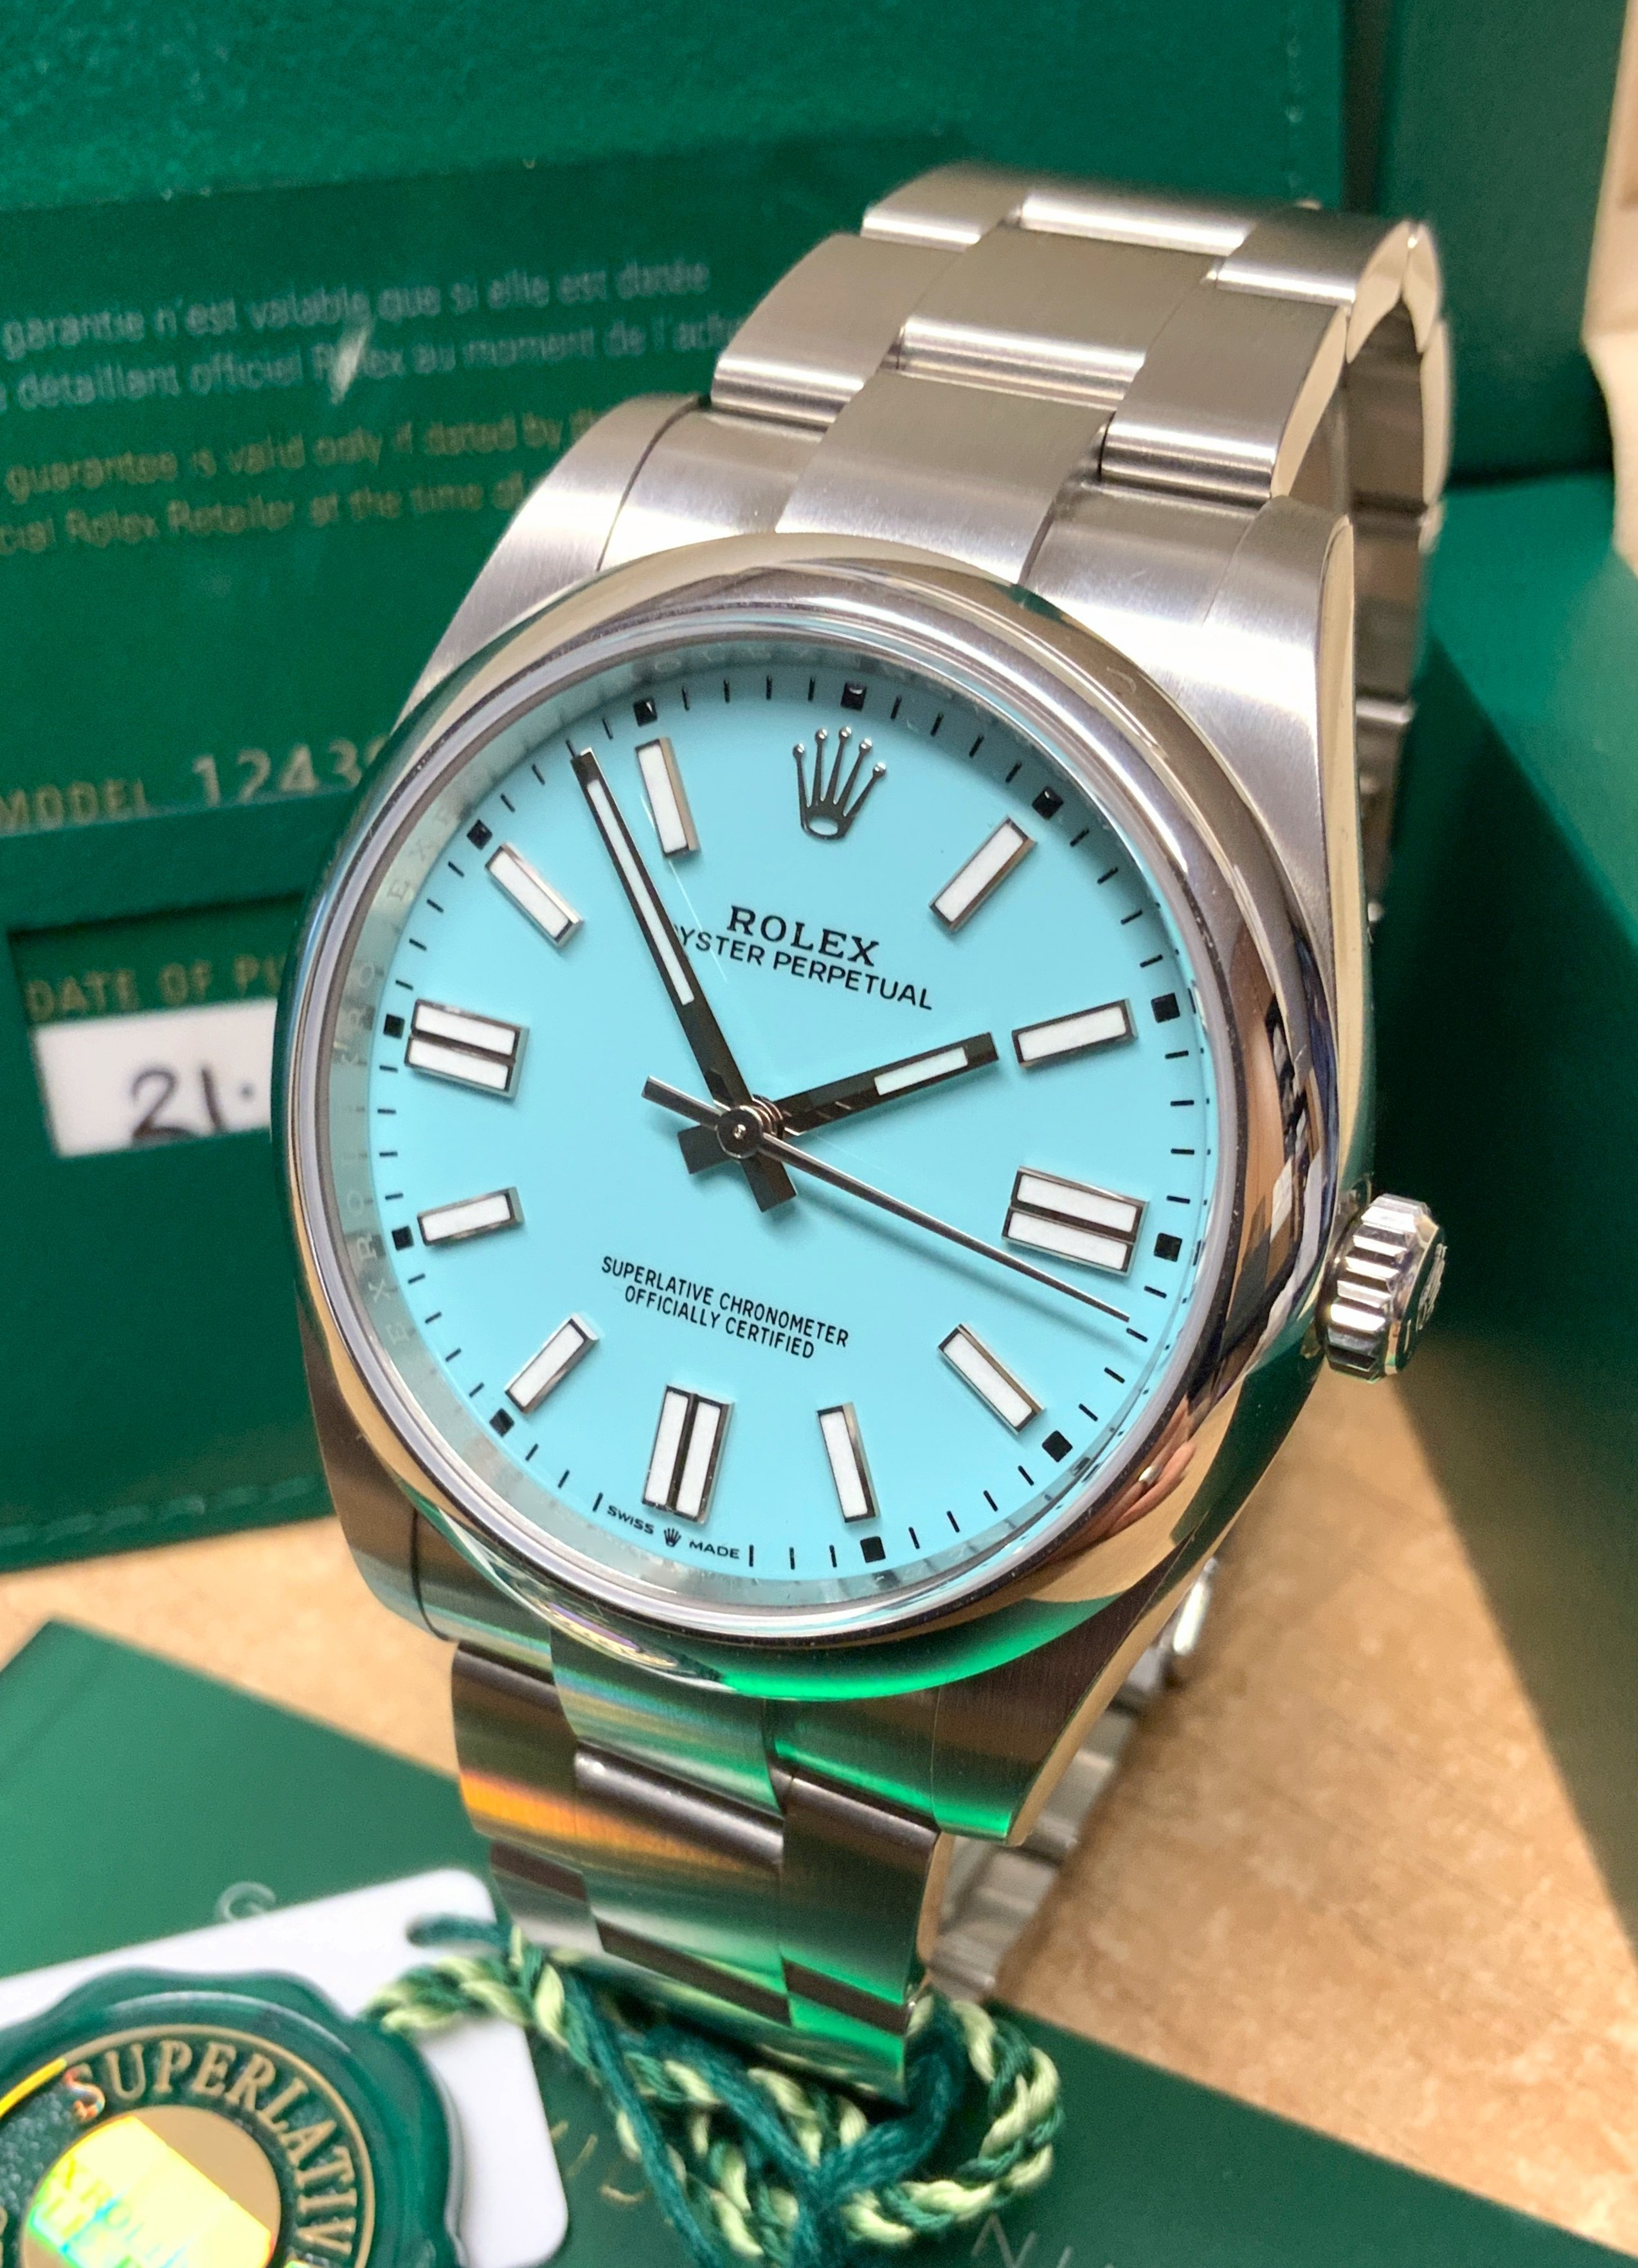 Rolex Oyster Perpetual 41 124300 Turquoise Blue